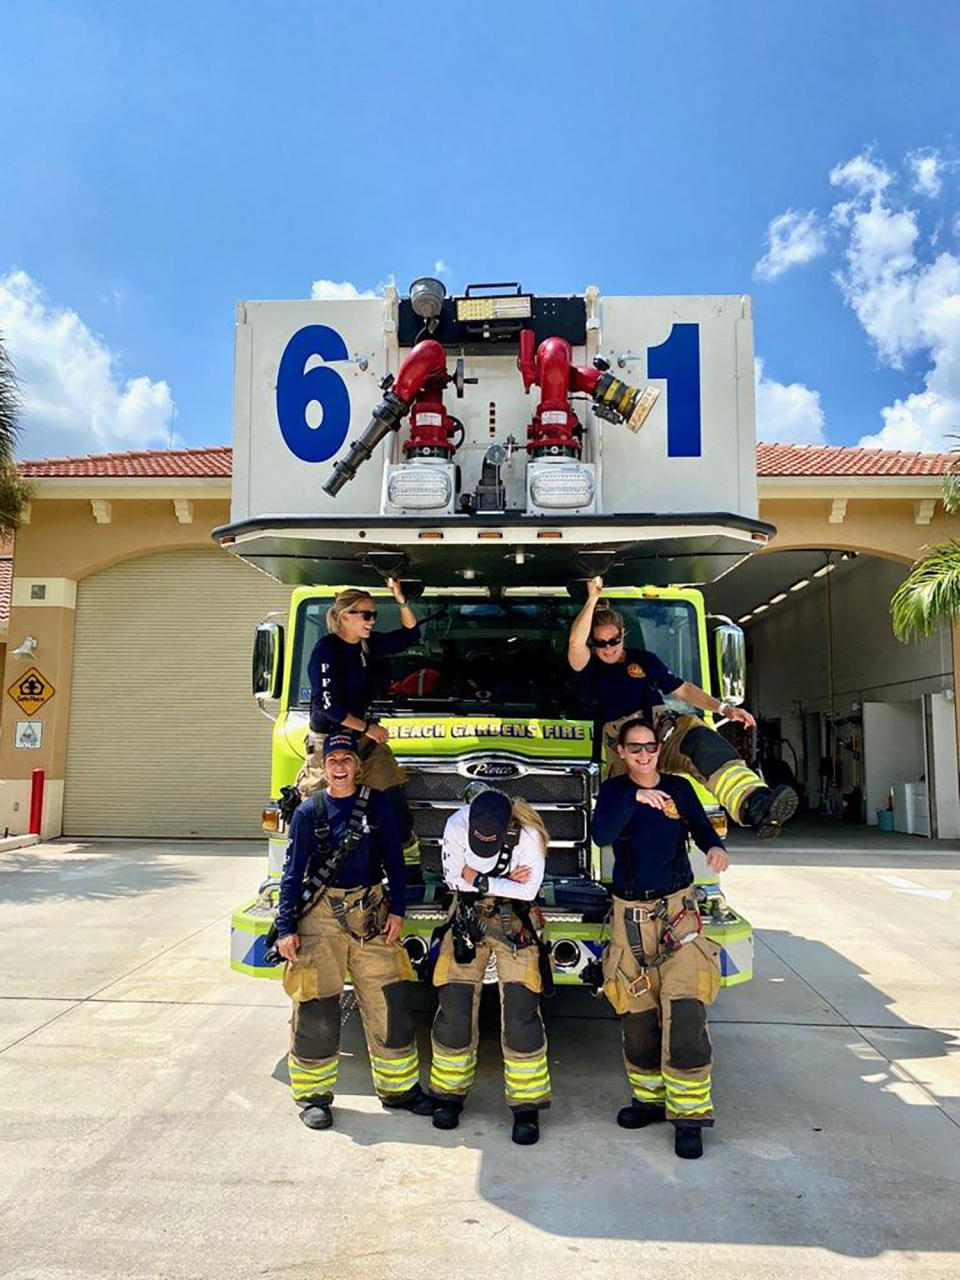 In this September 2020 photo provided by Palm Beach Gardens Fire and Rescue, firefighters lieutenant Kelsey Krzywada and Driver Engineer Sandi Ladewski (Sitting opposite on the truck), Lieutenant Krystyna Krakowski, fire medic Julie Dudley and Lieutenant (Acting Captain) Monica Marzullo (standing in front of the truck) pose at their station in Palm Beach Gardens, Fla. (Kodi Cabral/Courtesy of Palm Beach Gardens Fire and Rescue via AP)